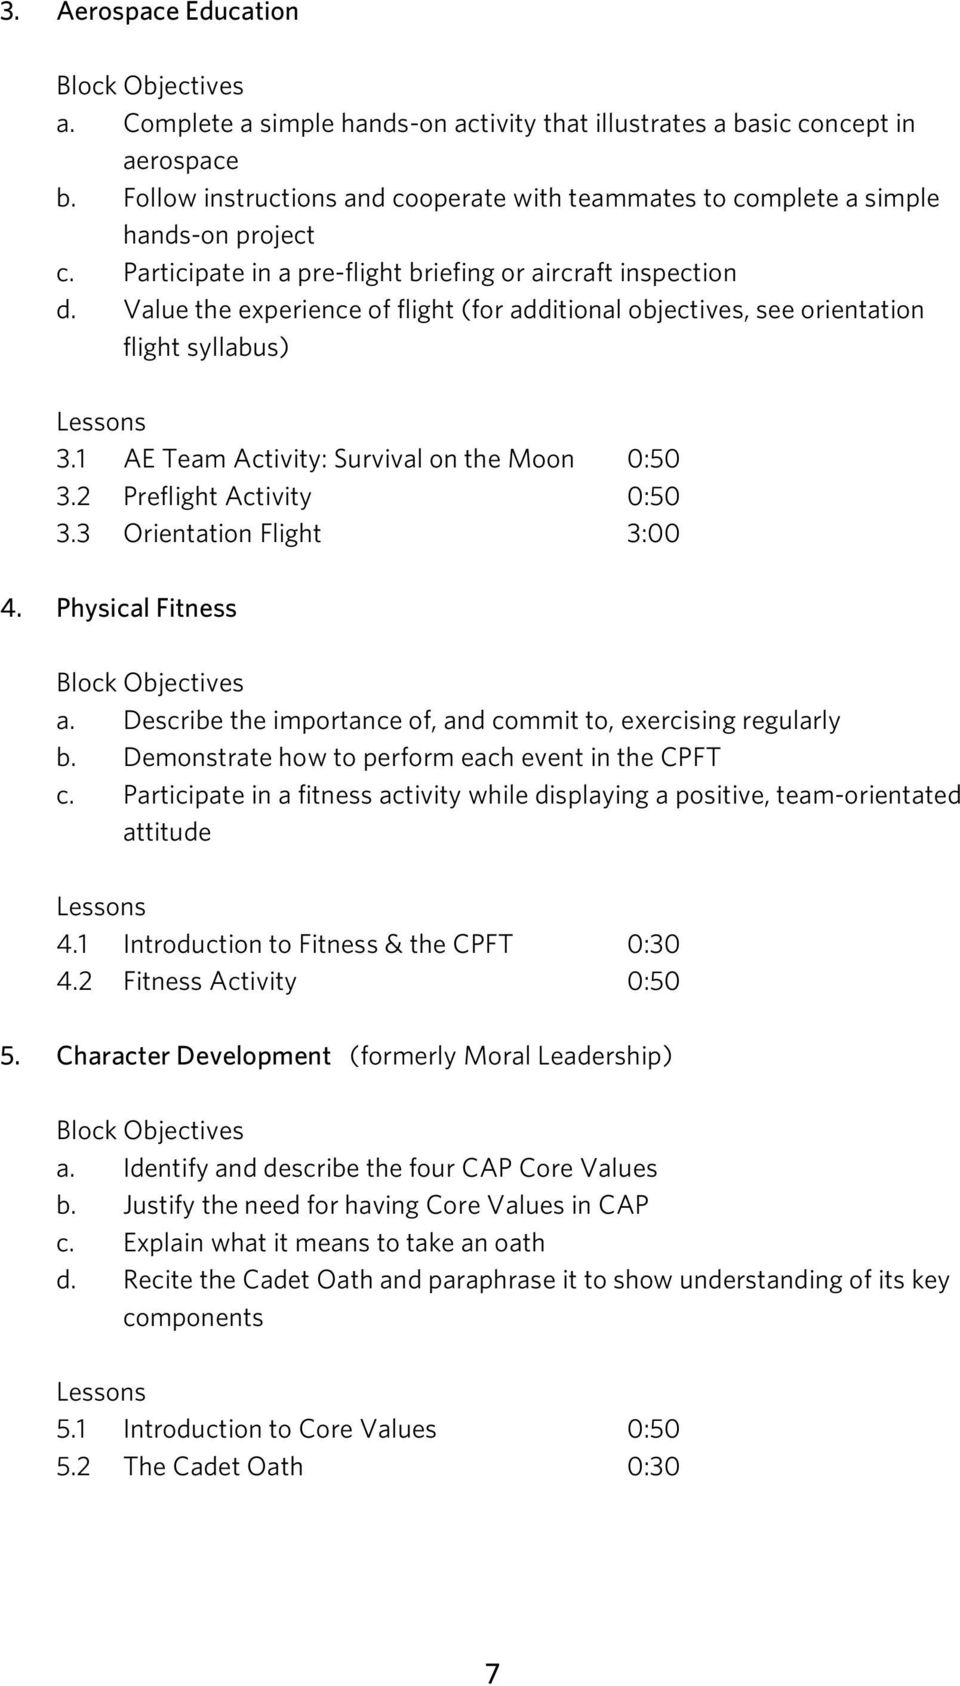 Value the experience of flight (for additional objectives, see orientation flight syllabus) Lessons 3.1 AE Team Activity: Survival on the Moon 0:50 3.2 Preflight Activity 0:50 3.